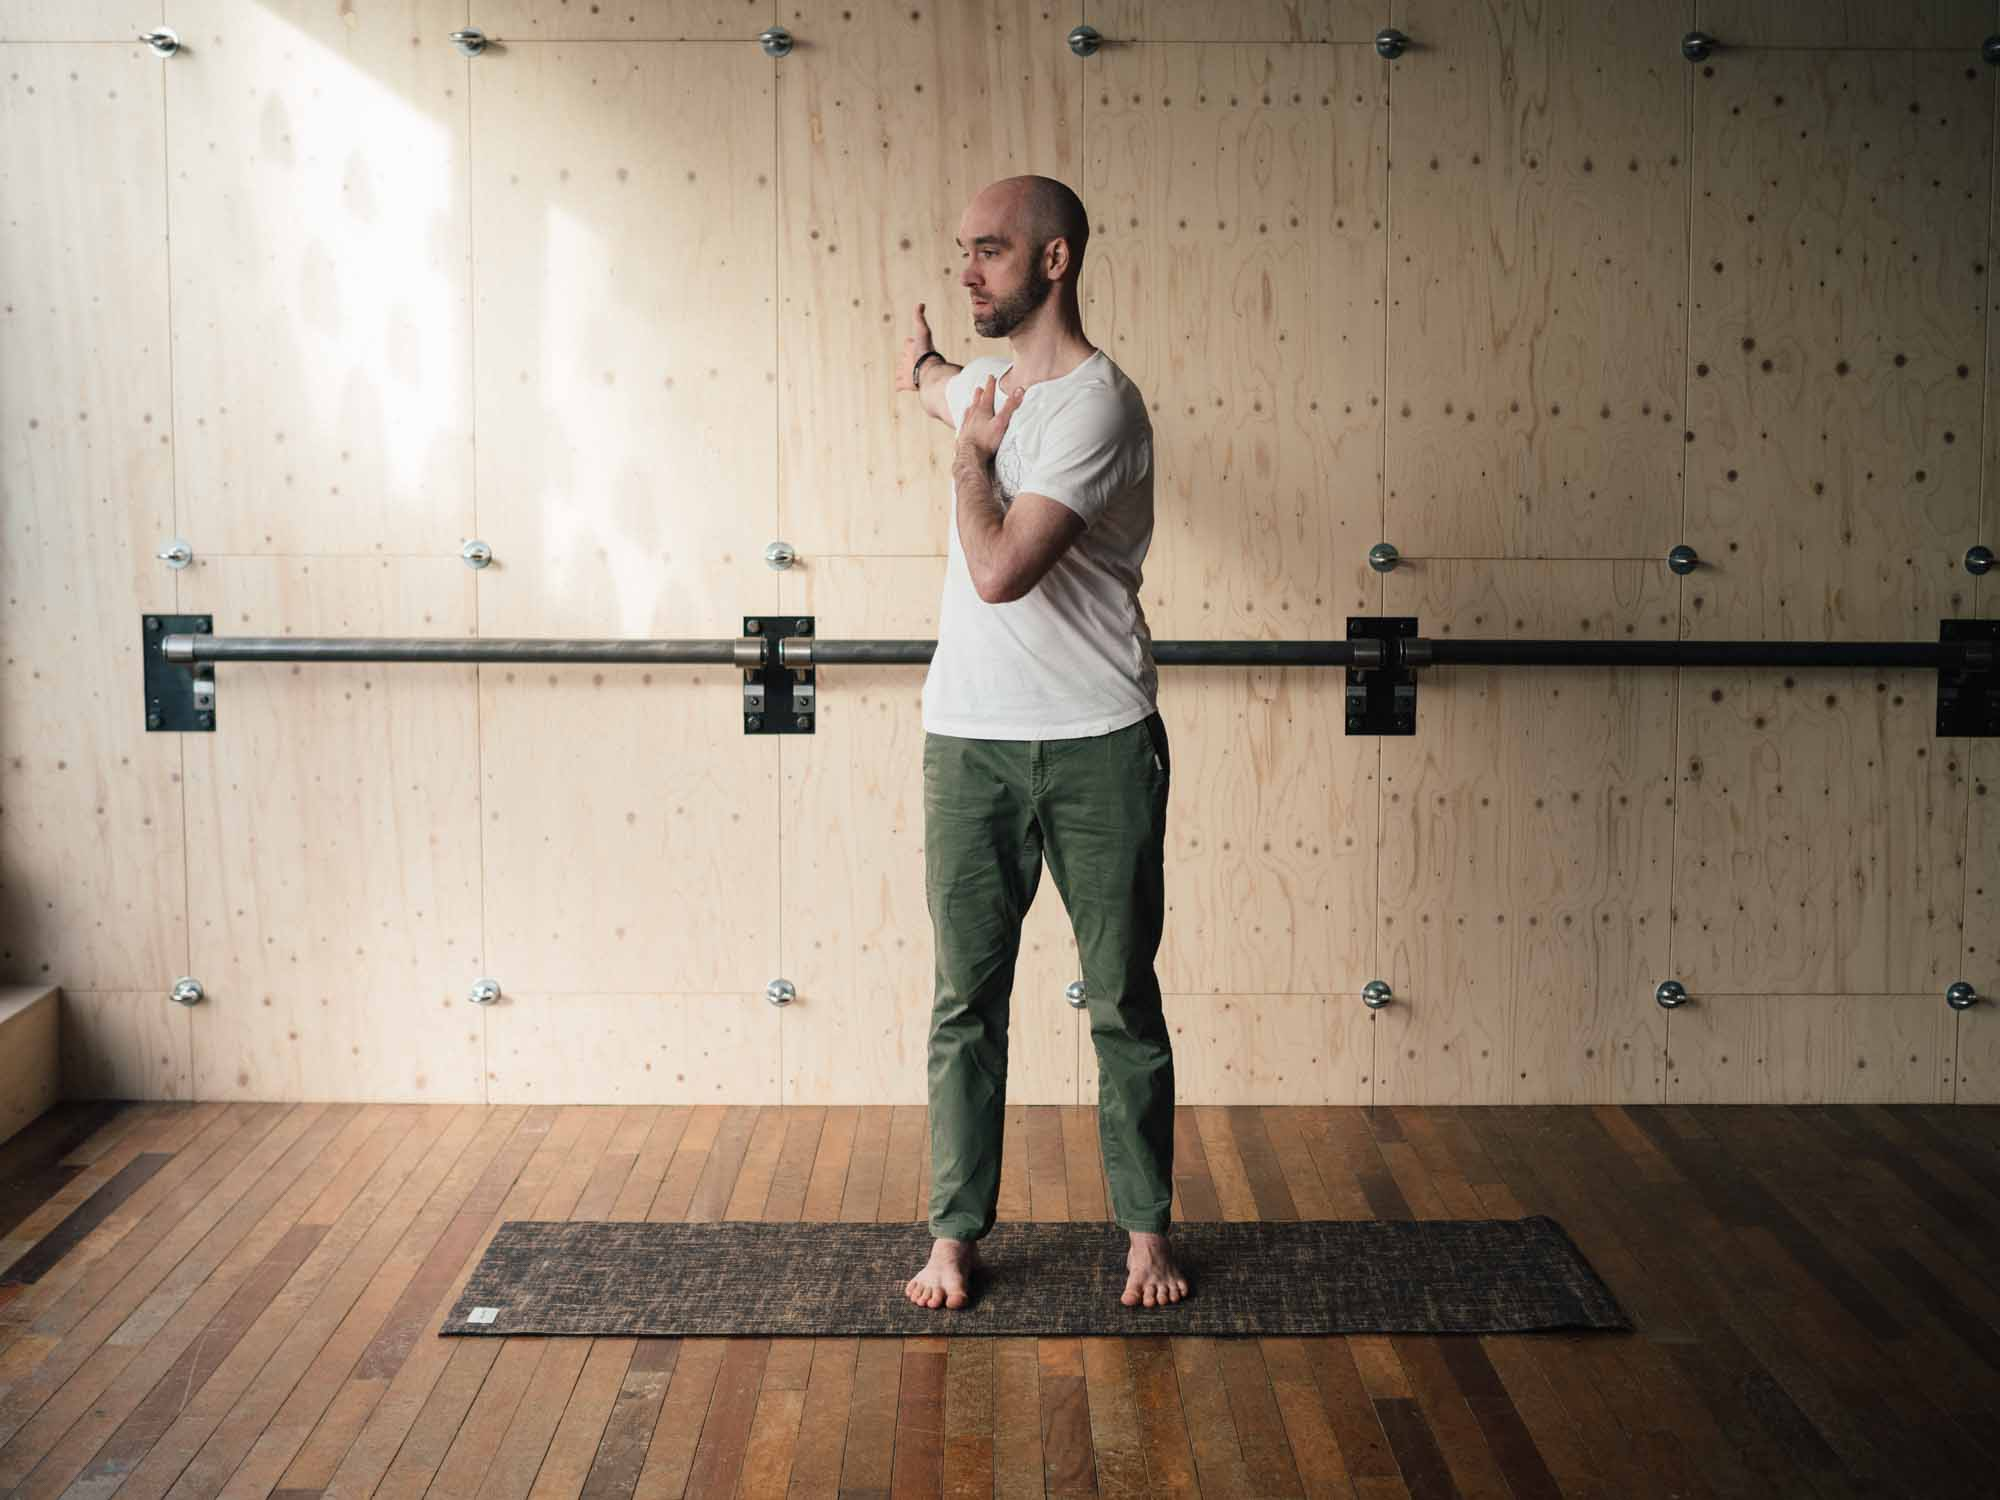 Man doing a standing twist in a yoga studio